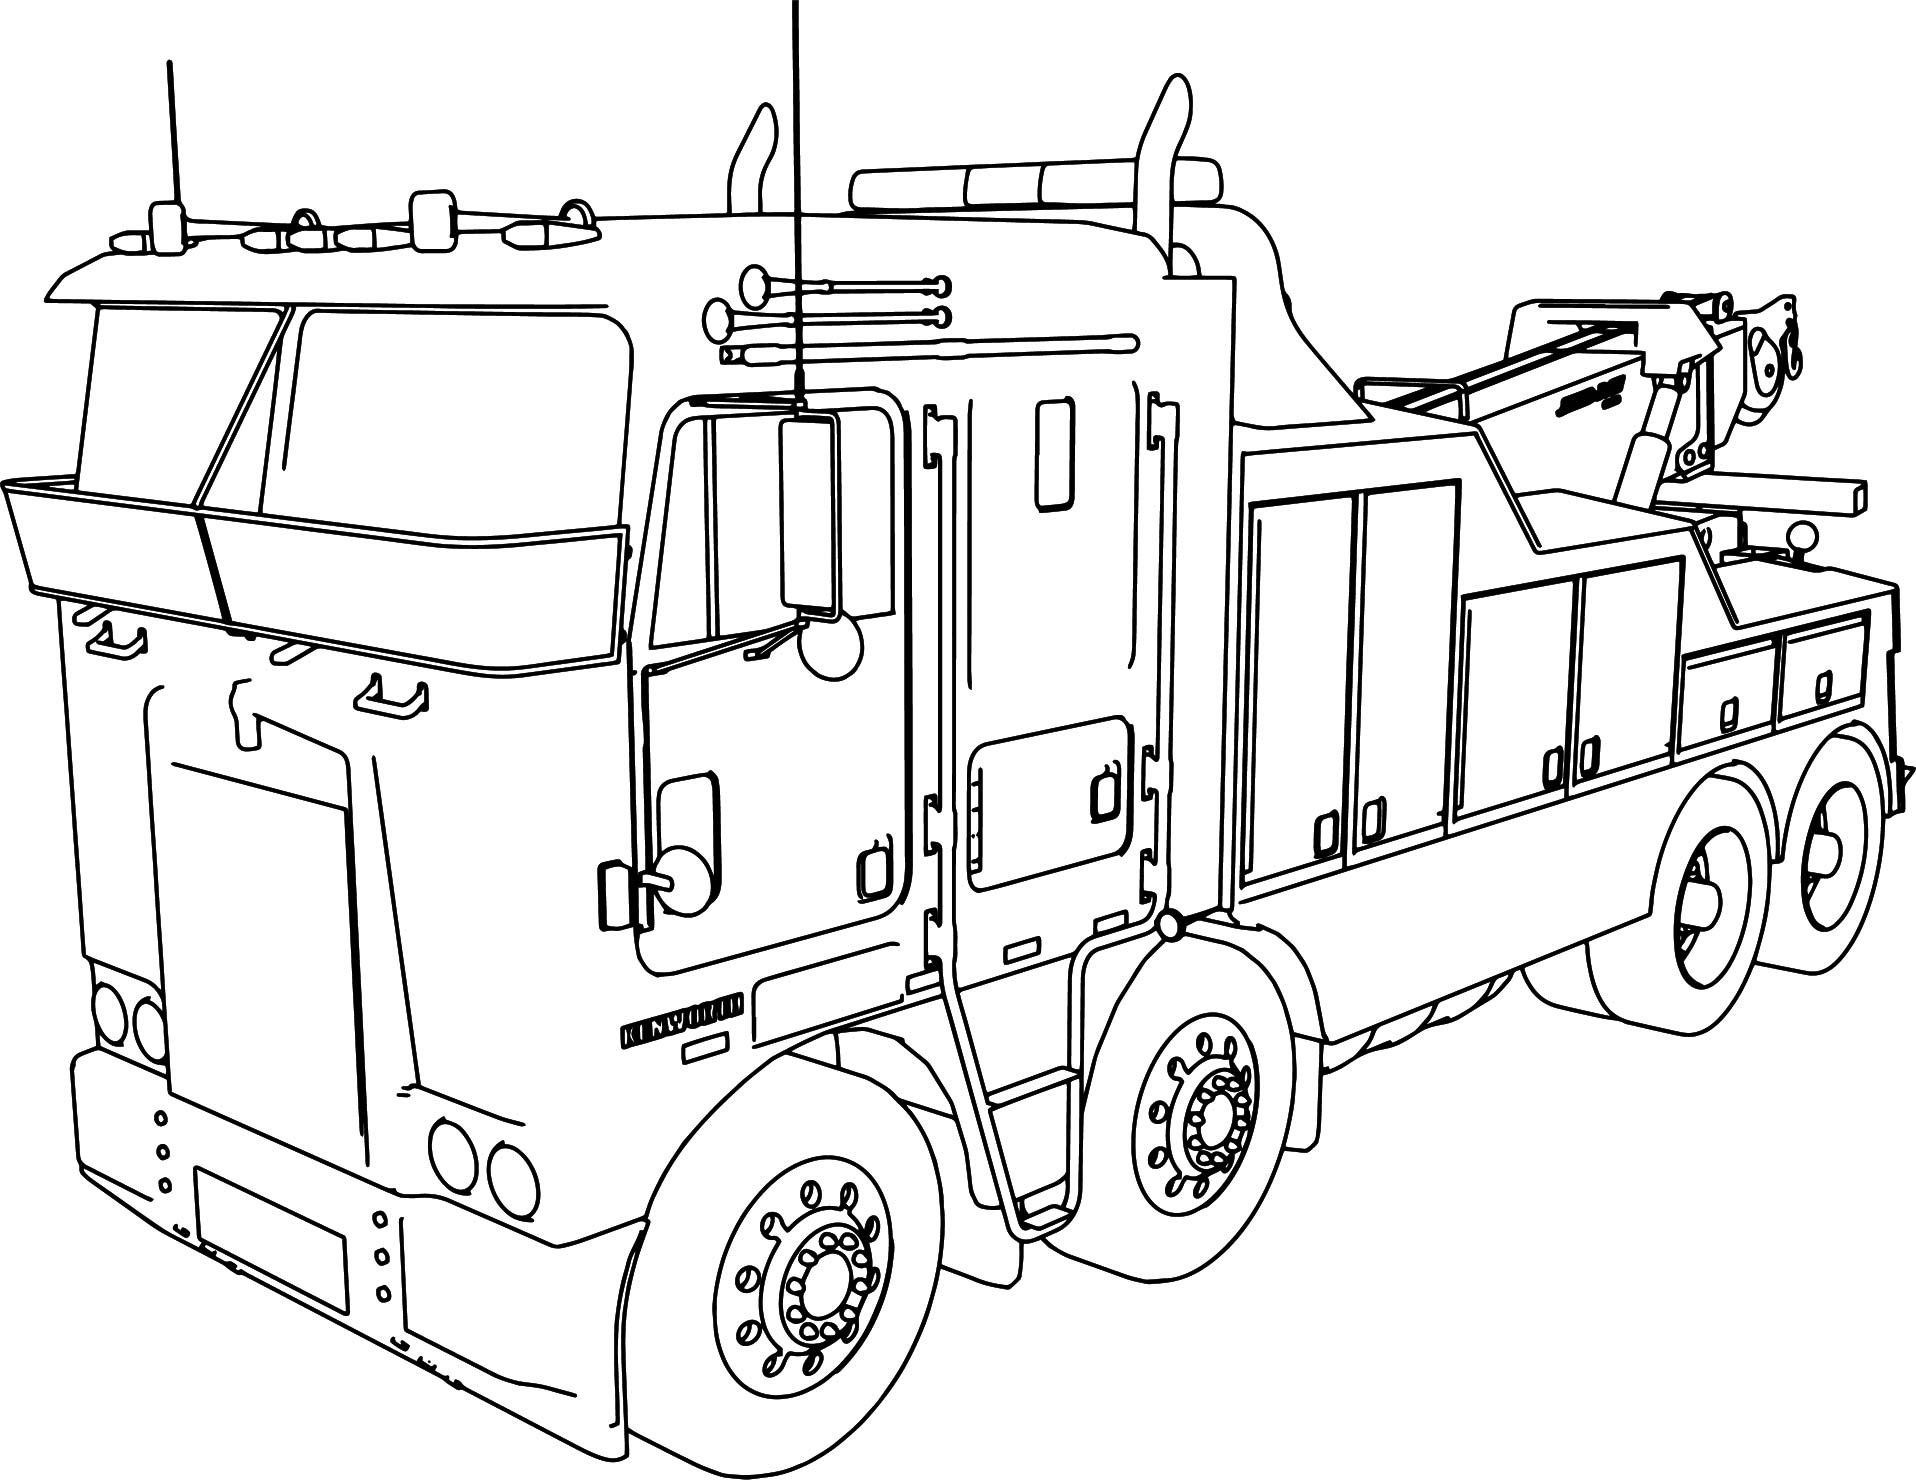 Coloring Kenworth Pages Truck 2020 Camion Dibujo Camiones